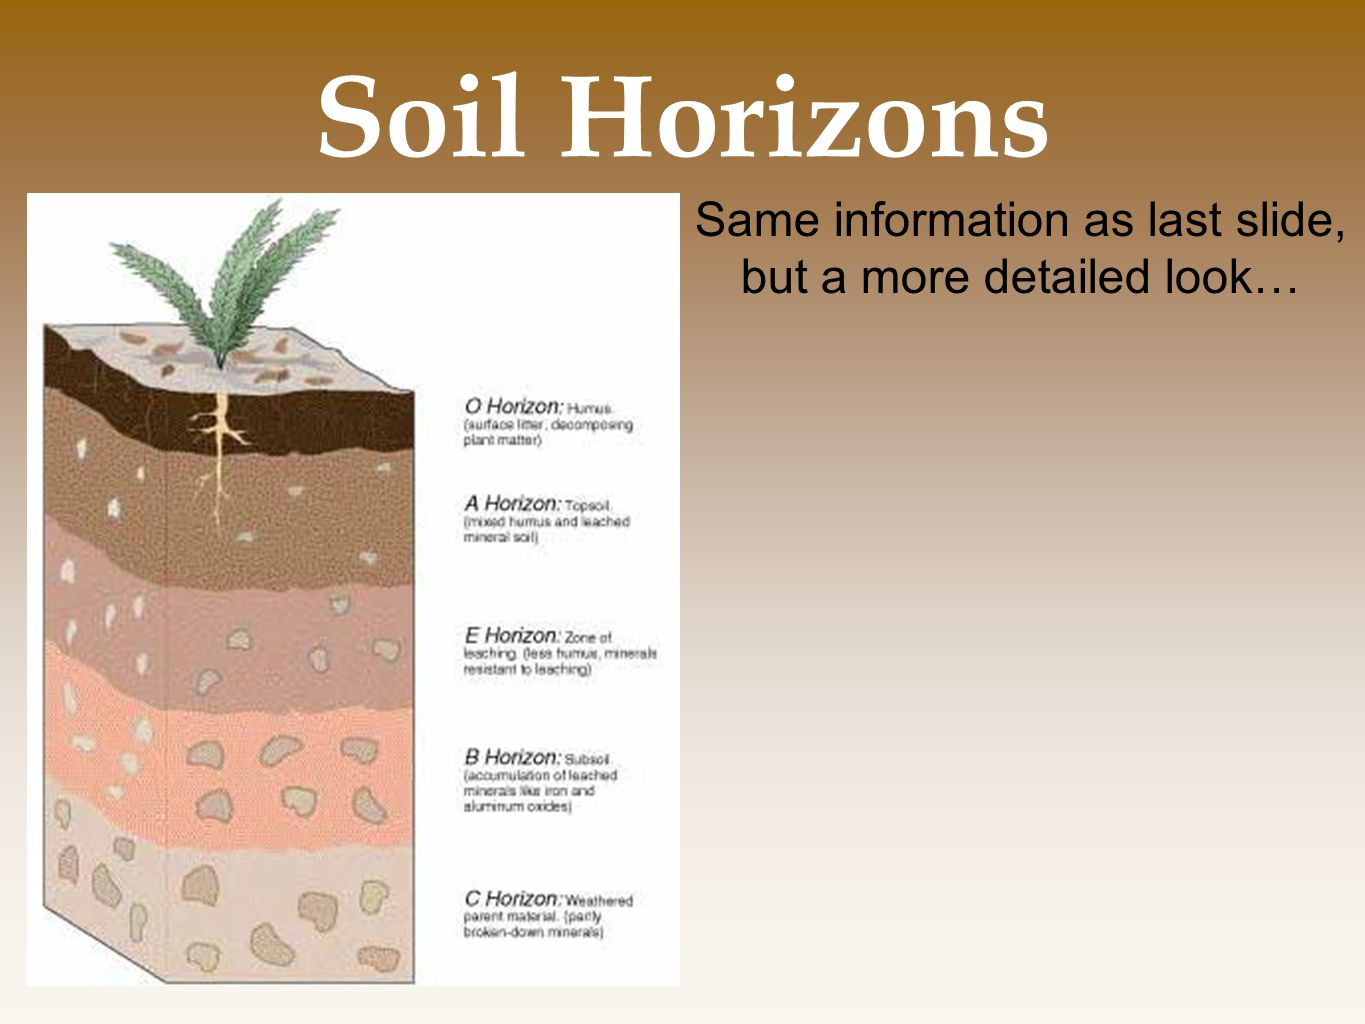 Same information as last slide, but a more detailed look…